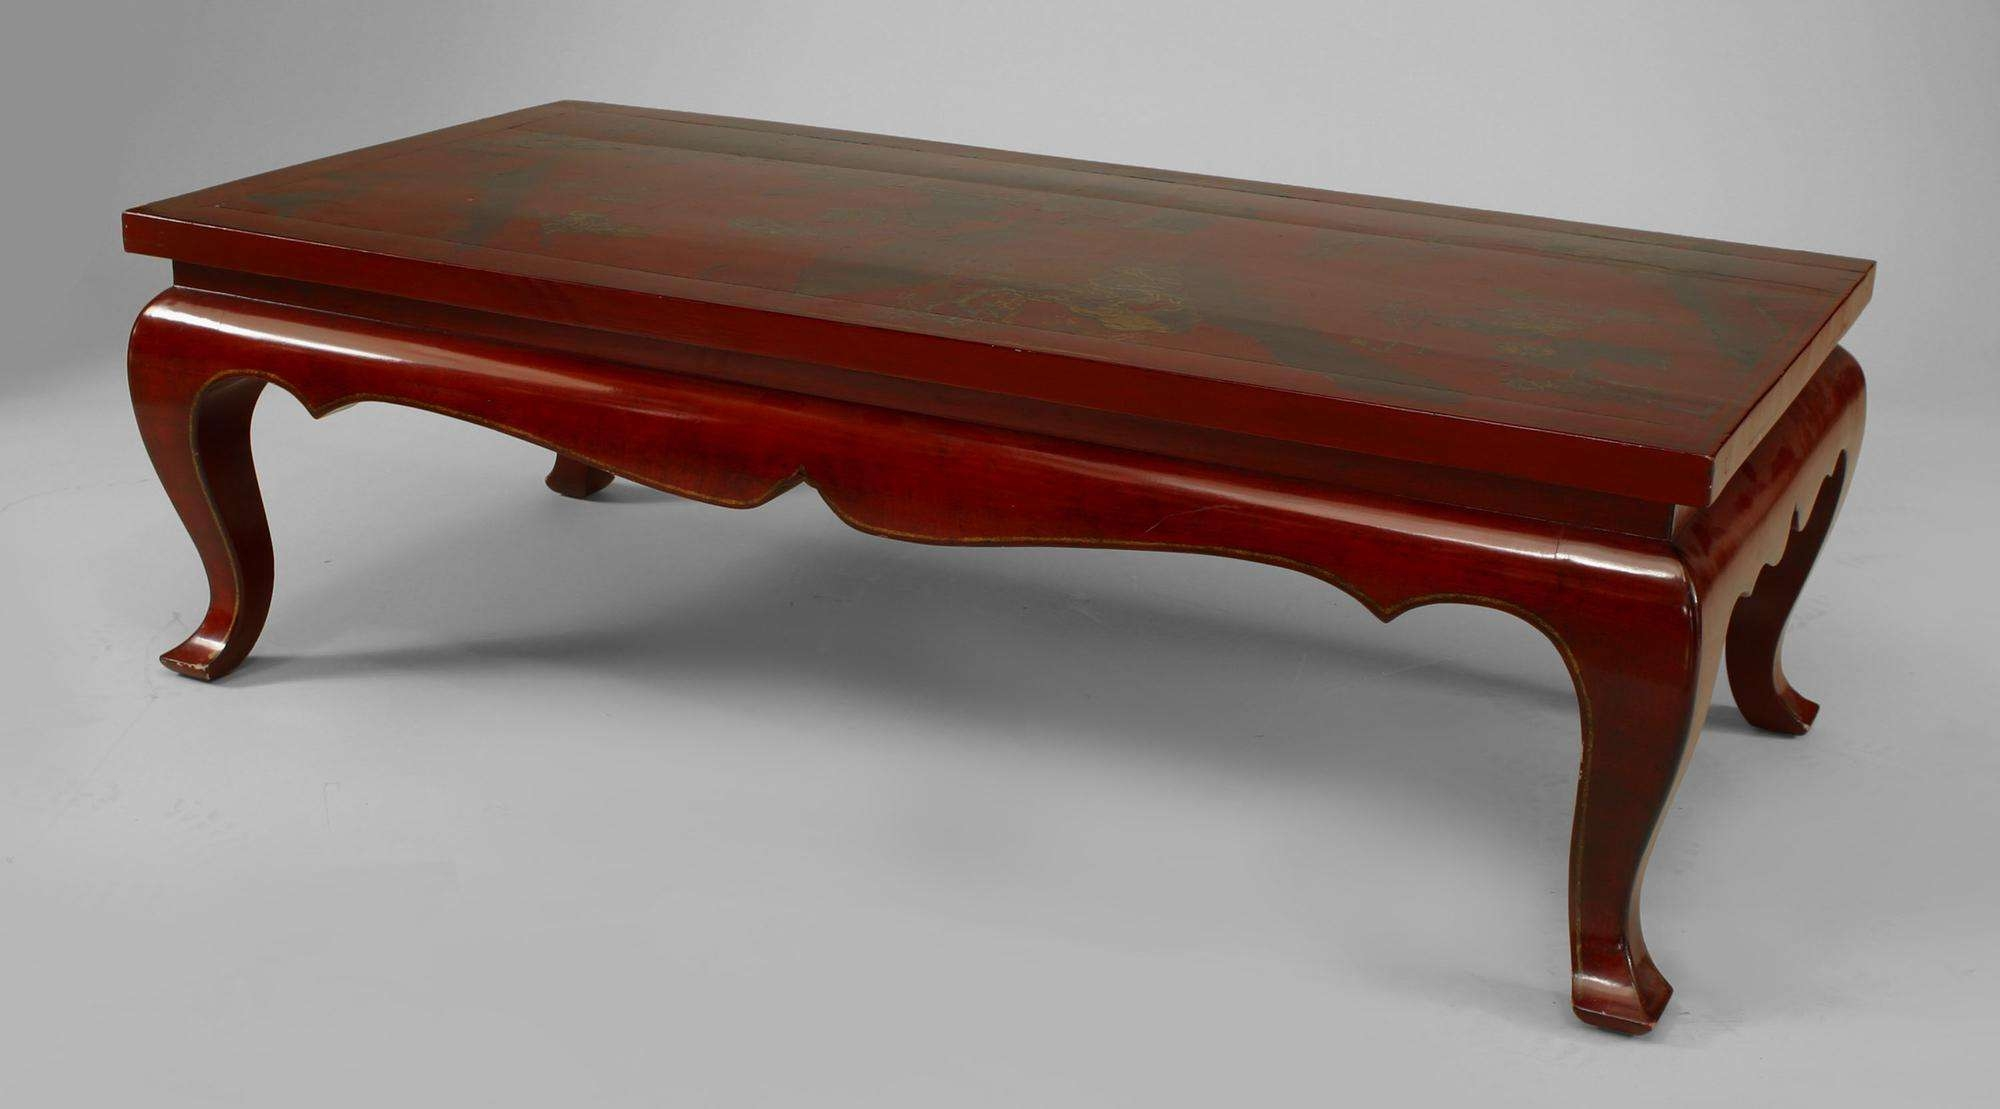 Most Recent Asian Coffee Tables Inside Stunning Chinese Style Table On Latest Home Interior Design